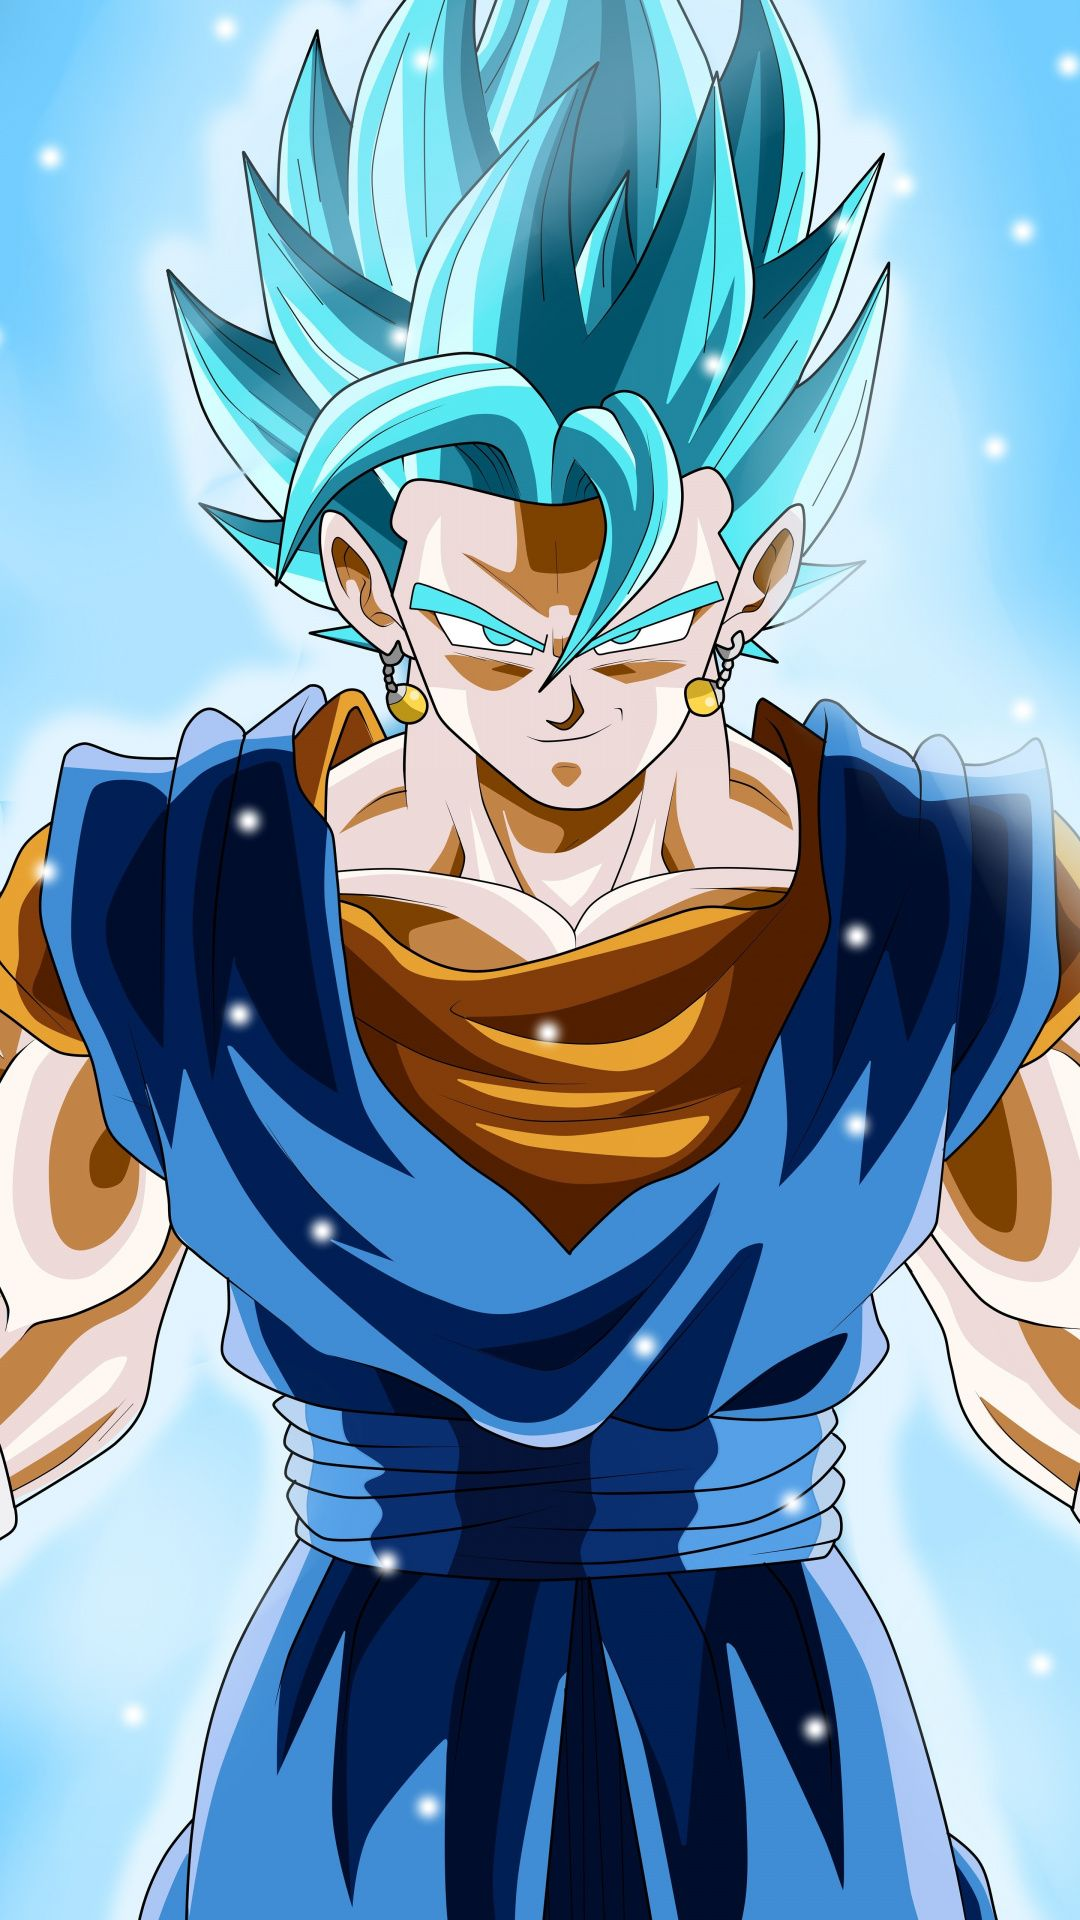 Vegetto Super Saiyan Dragon Ball Super Anime 1080x1920 Wallpaper Anime Dragon Ball Super Dragon Ball Goku Anime Dragon Ball